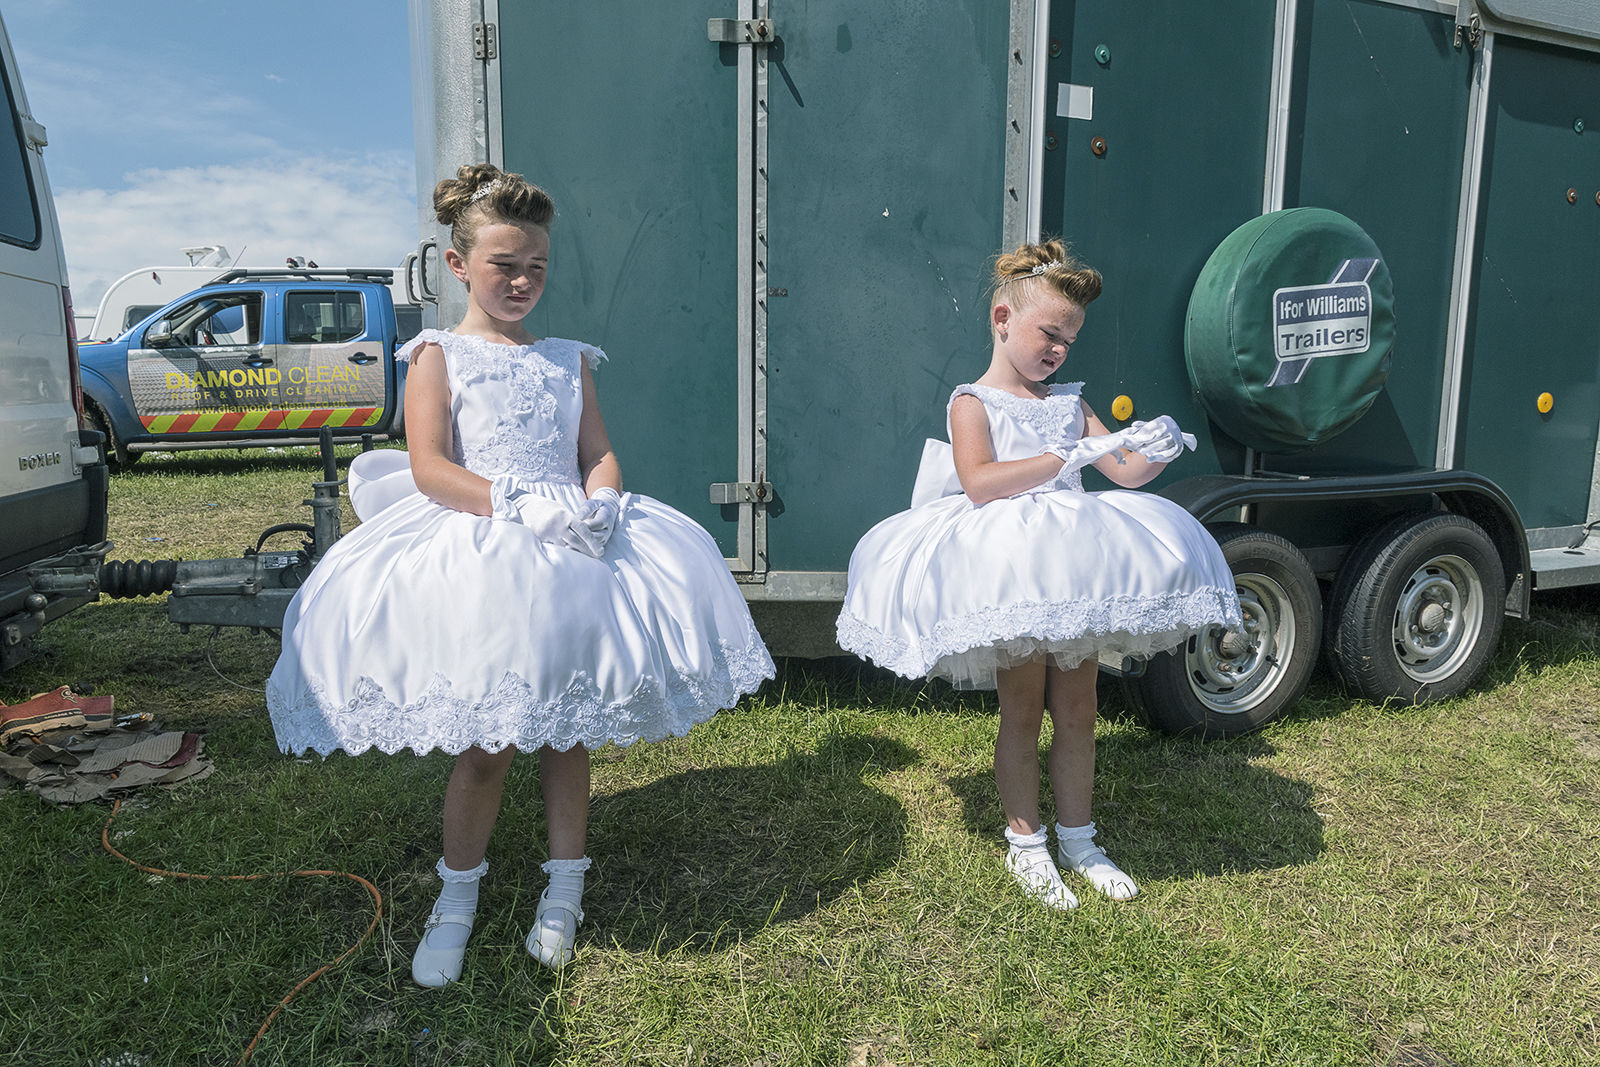 White Dresses, Appleby-in-Westmoreland, UK 2019